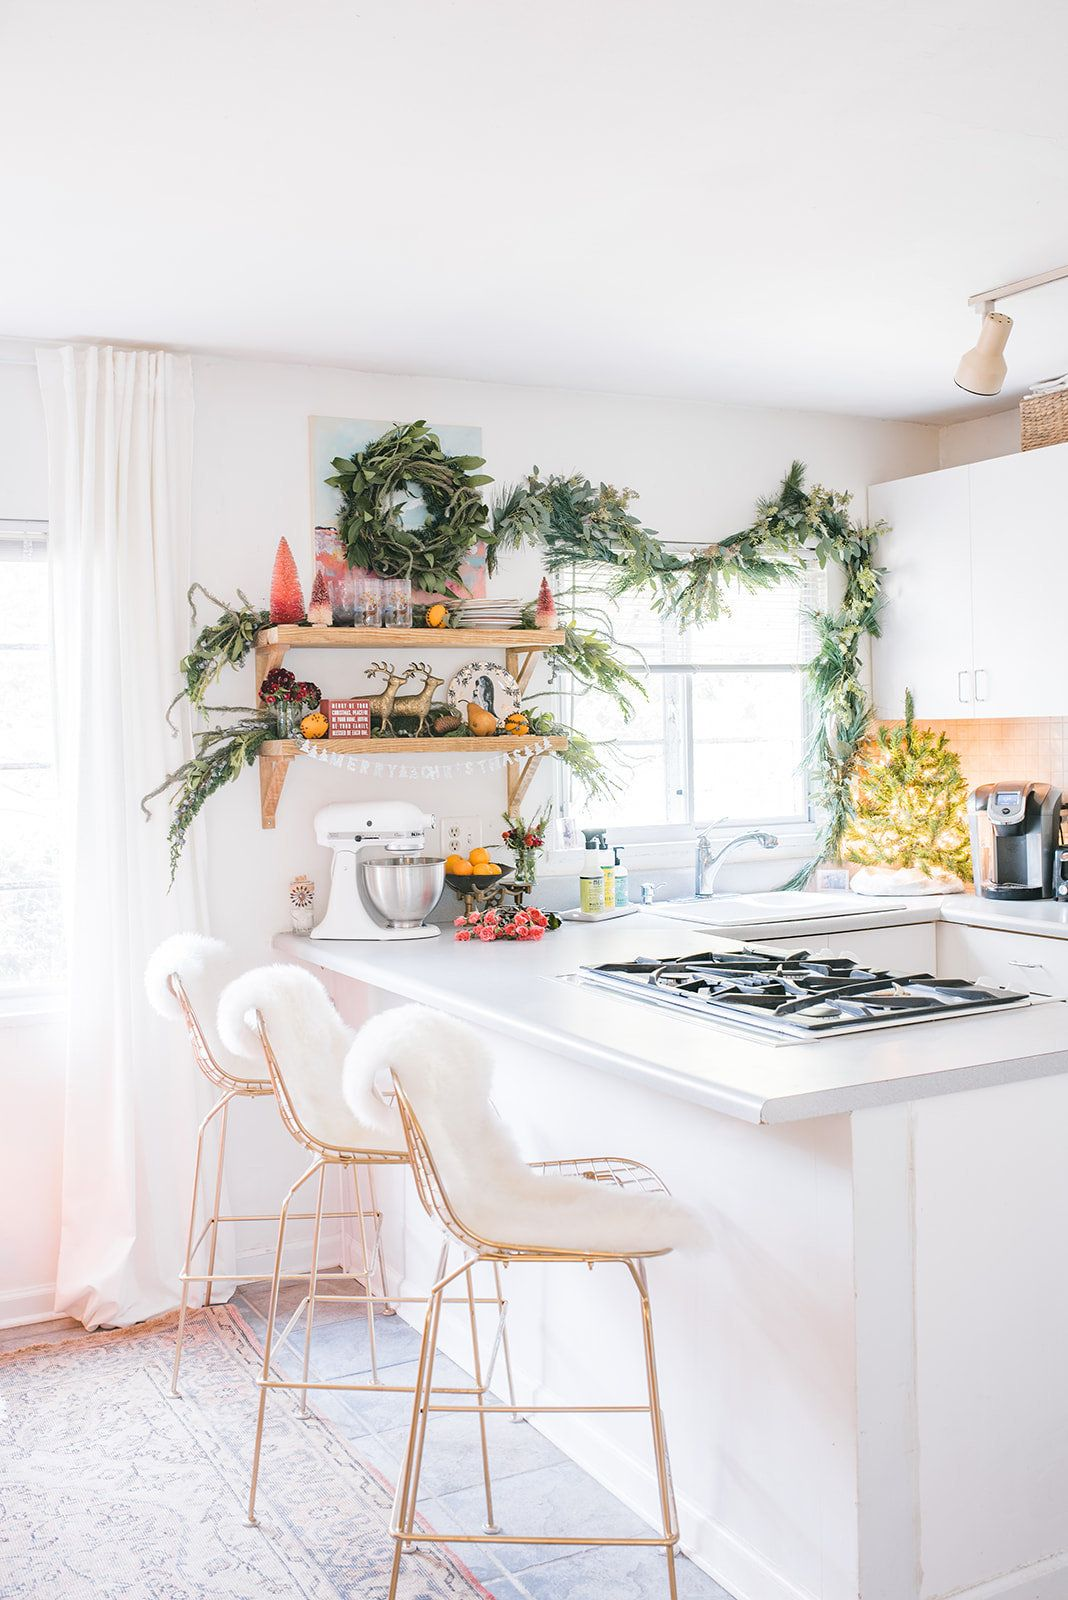 holiday decor for kitchens jaime roberts designs hannah lozano photography boho chic on boho chic interior design kitchen id=27681